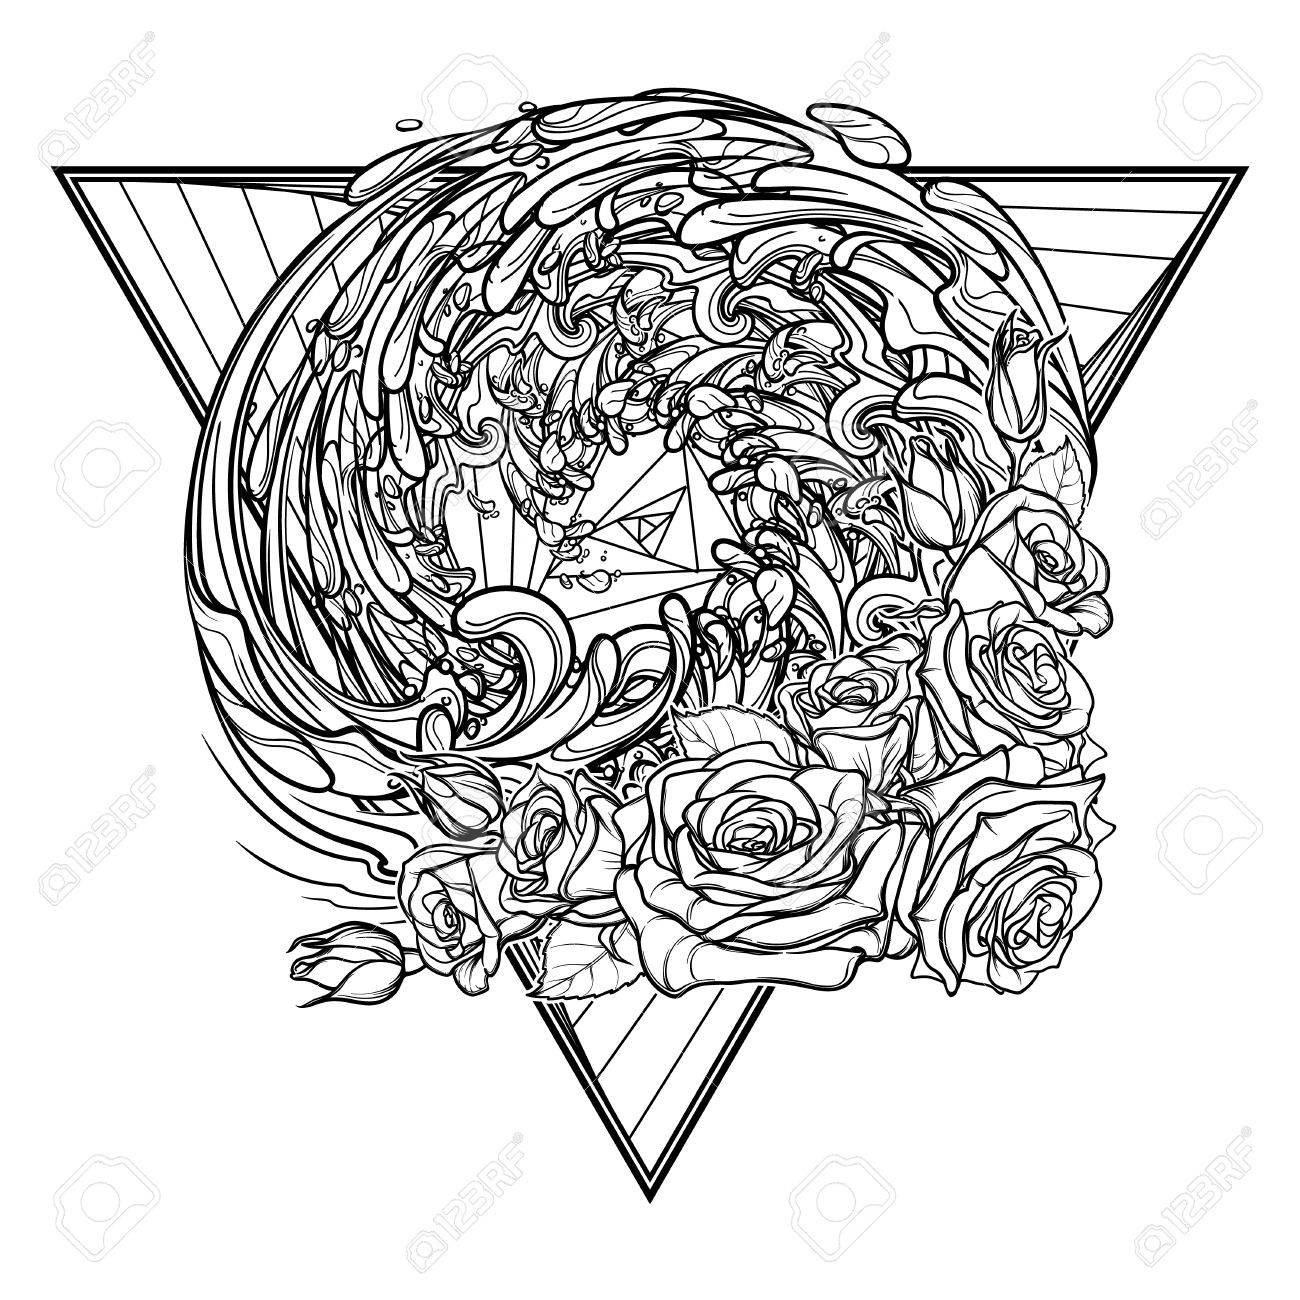 1300x1300 Alchemic Element Of Water Sign. Down Pointing Triangle With Rose